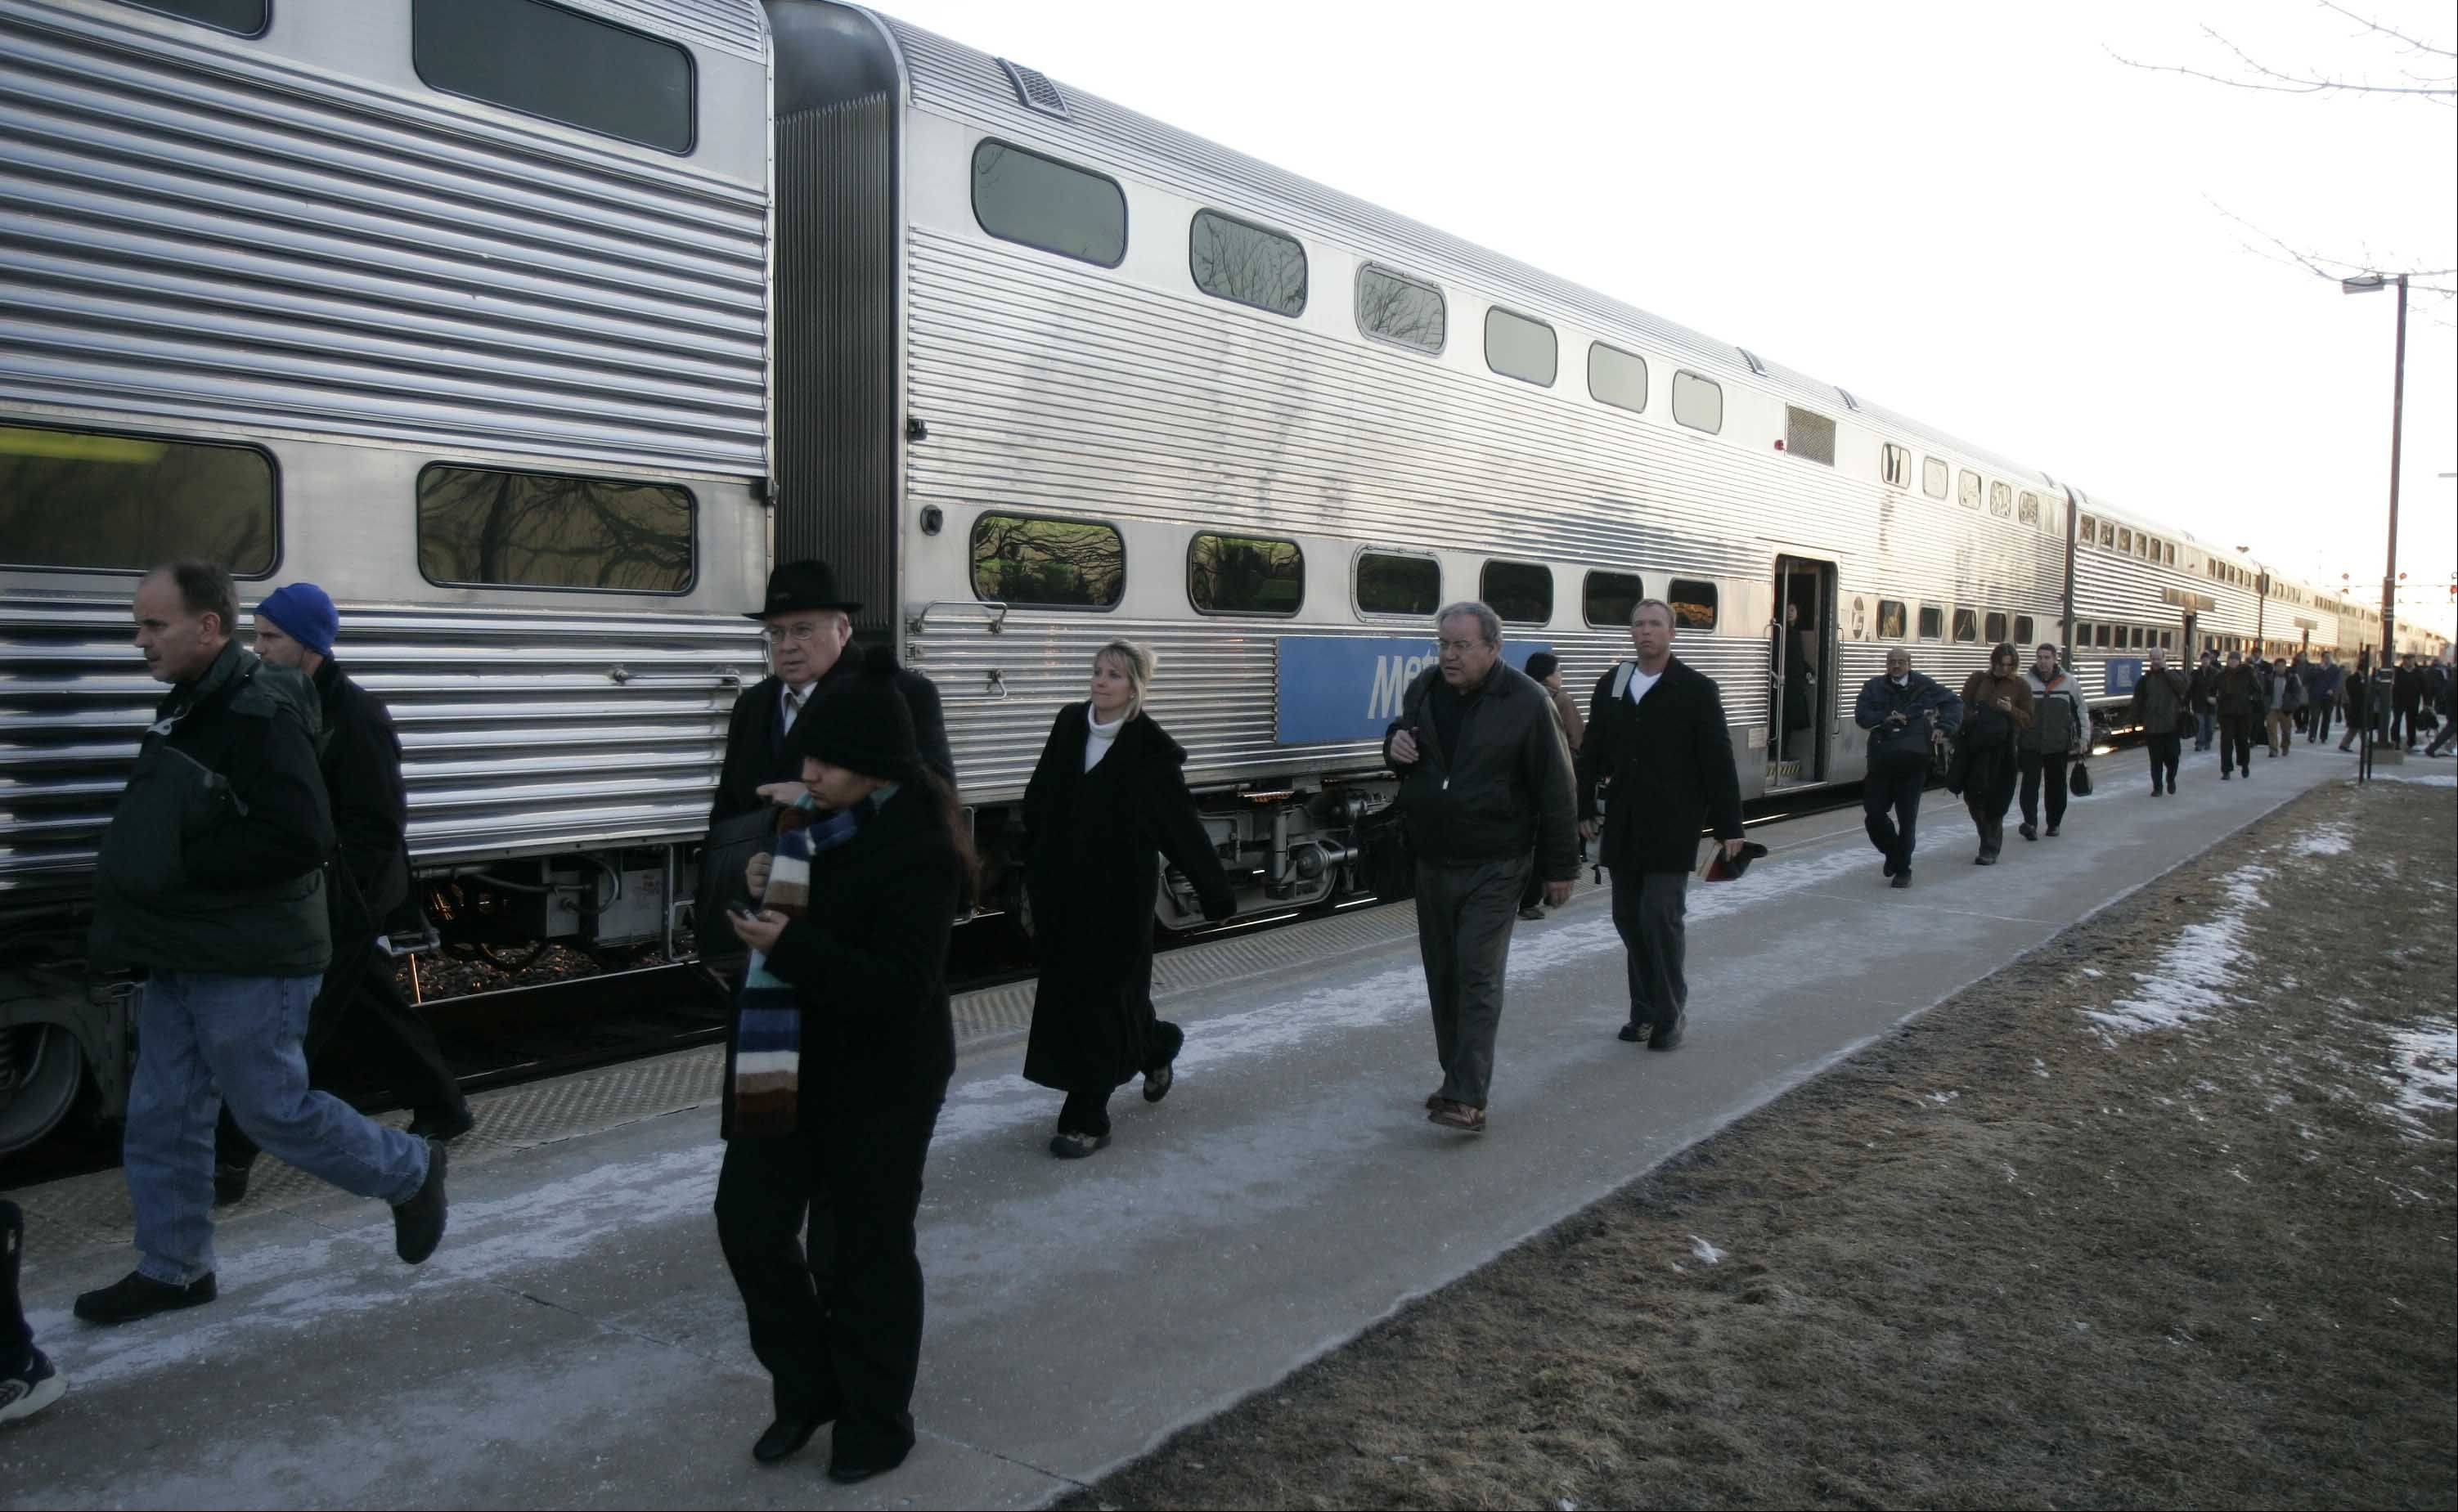 Looks like Metra's on track for a fare hike